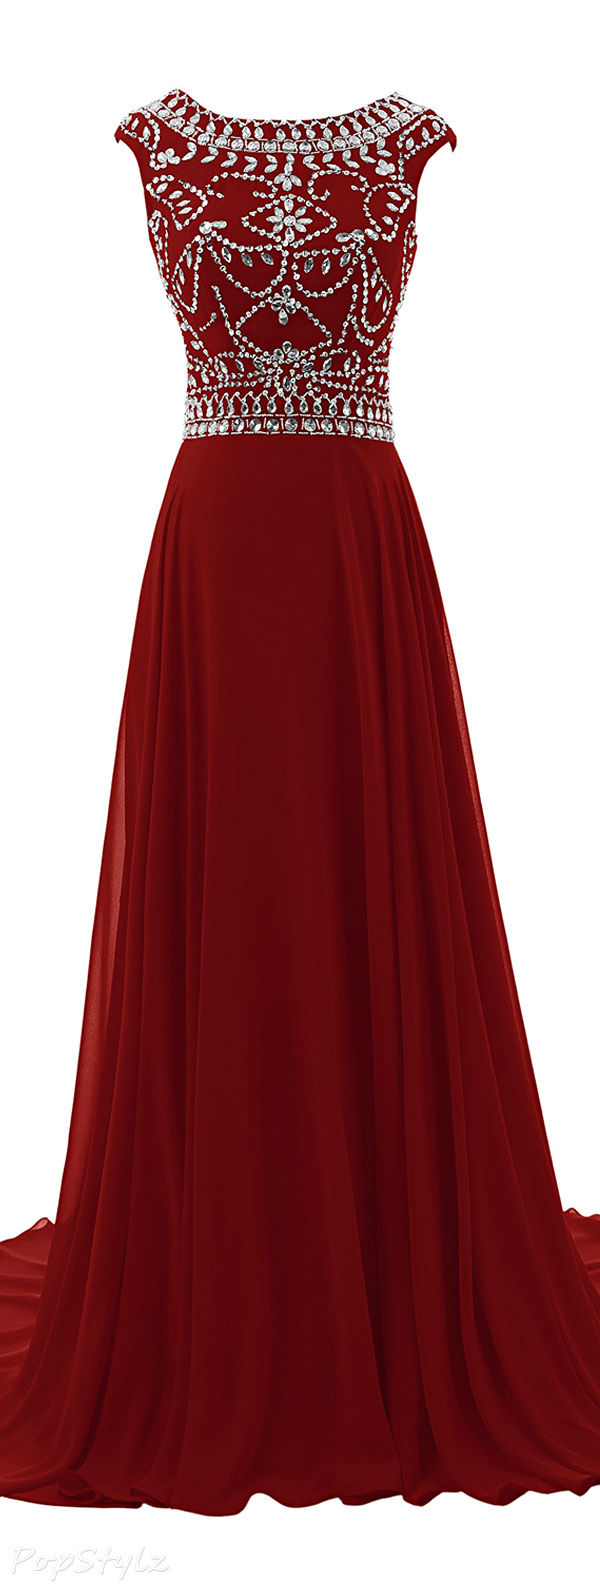 Diyouth Cap Sleeves Beaded Evening Gown